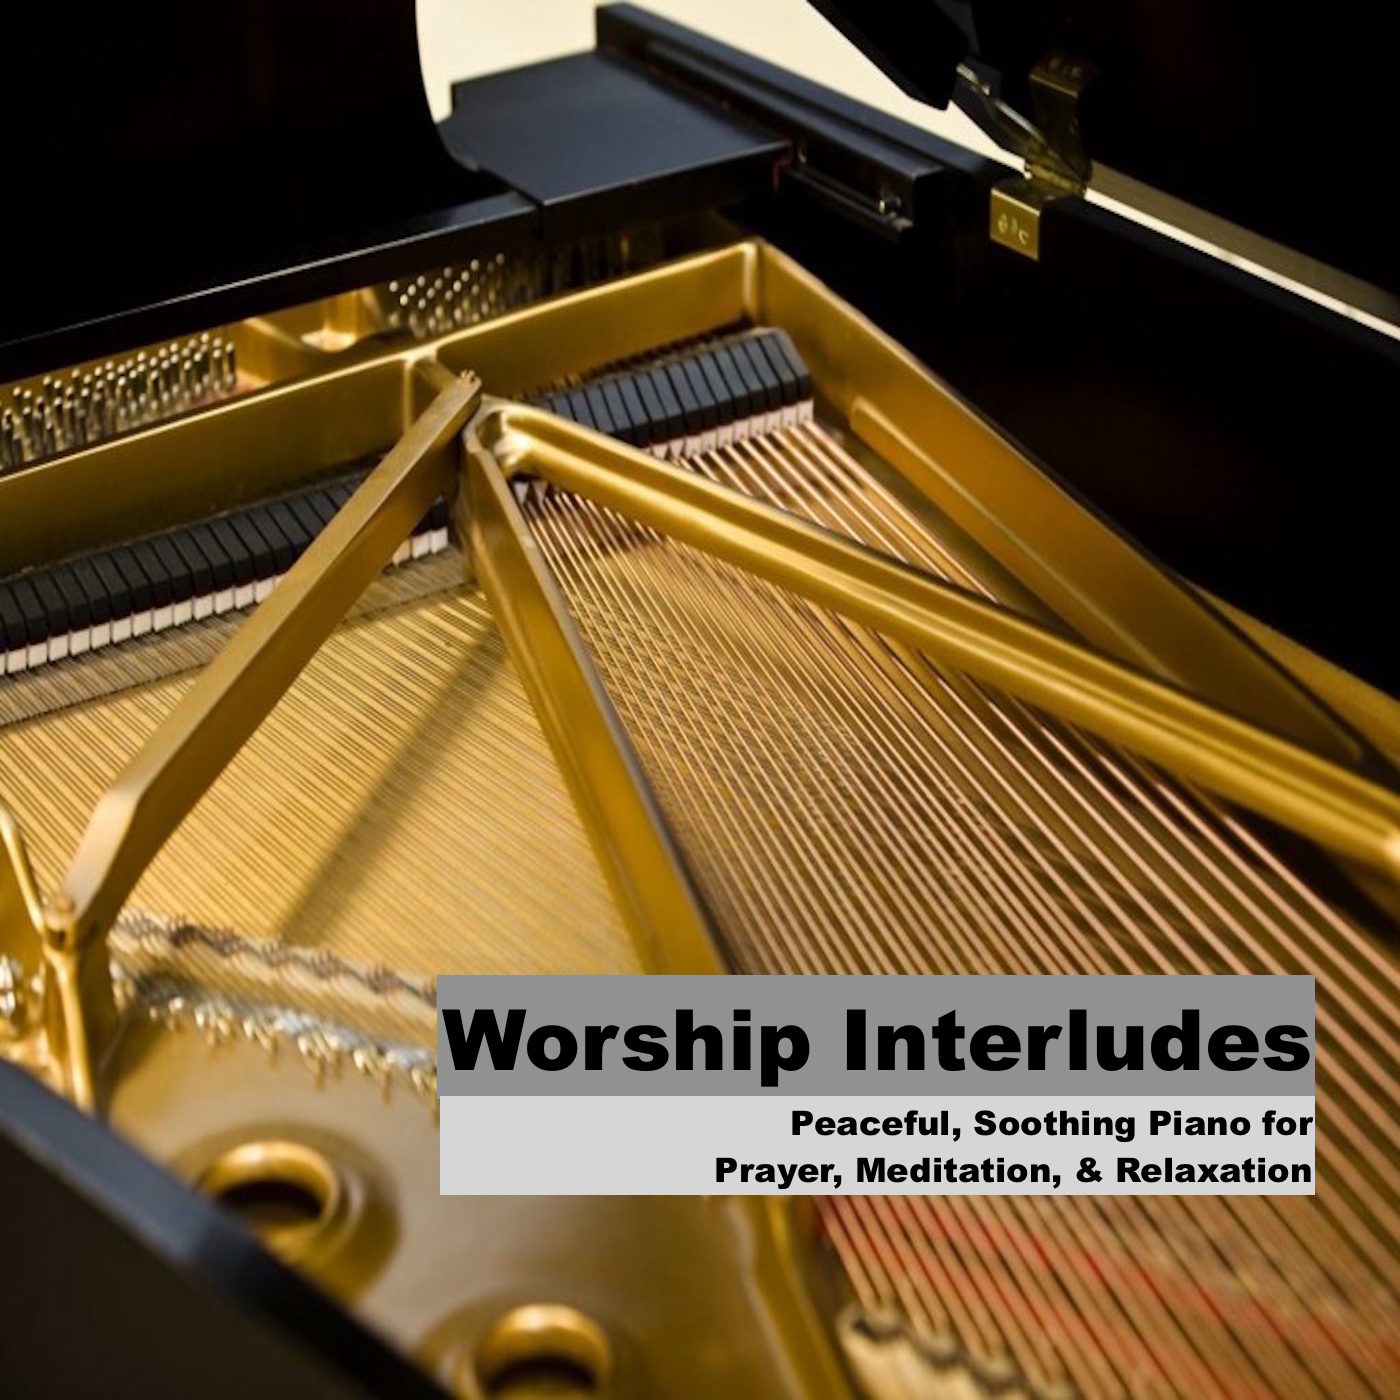 Worship Interludes - Piano Instrumentals for Prayer, Meditation, Soaking Worship, Relaxation, Study, and Rest by Fred McKinnon, Pianist/Composer